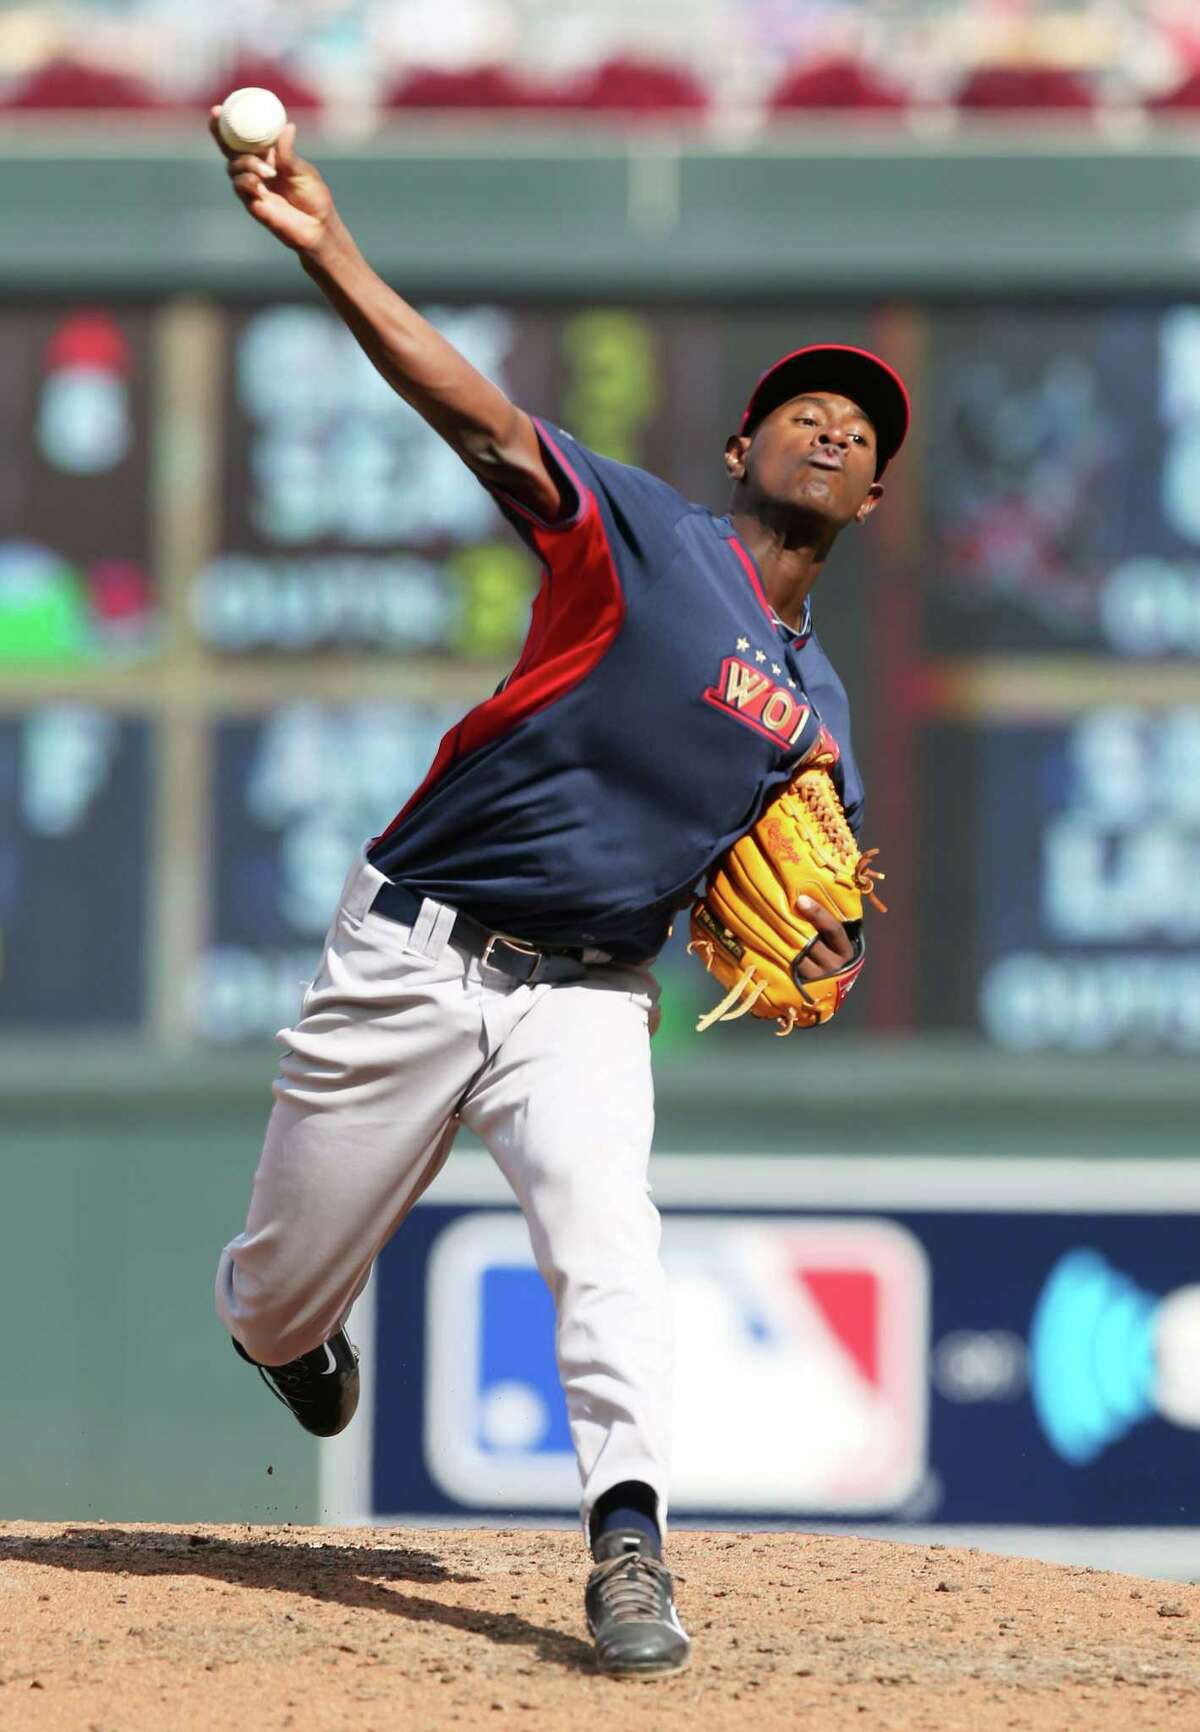 In this July 13, 2014, file photo, World's pitcher Luis Severino throws a pitch during the All-Star Futures baseball game against Team United States in Minneapolis. Touted pitching prospect Severino will make his next start with the New York Yankees. Manager Joe Girardi says the 21-year-old Severino will start at home next week against Boston, but did not specify when he would get the ball.